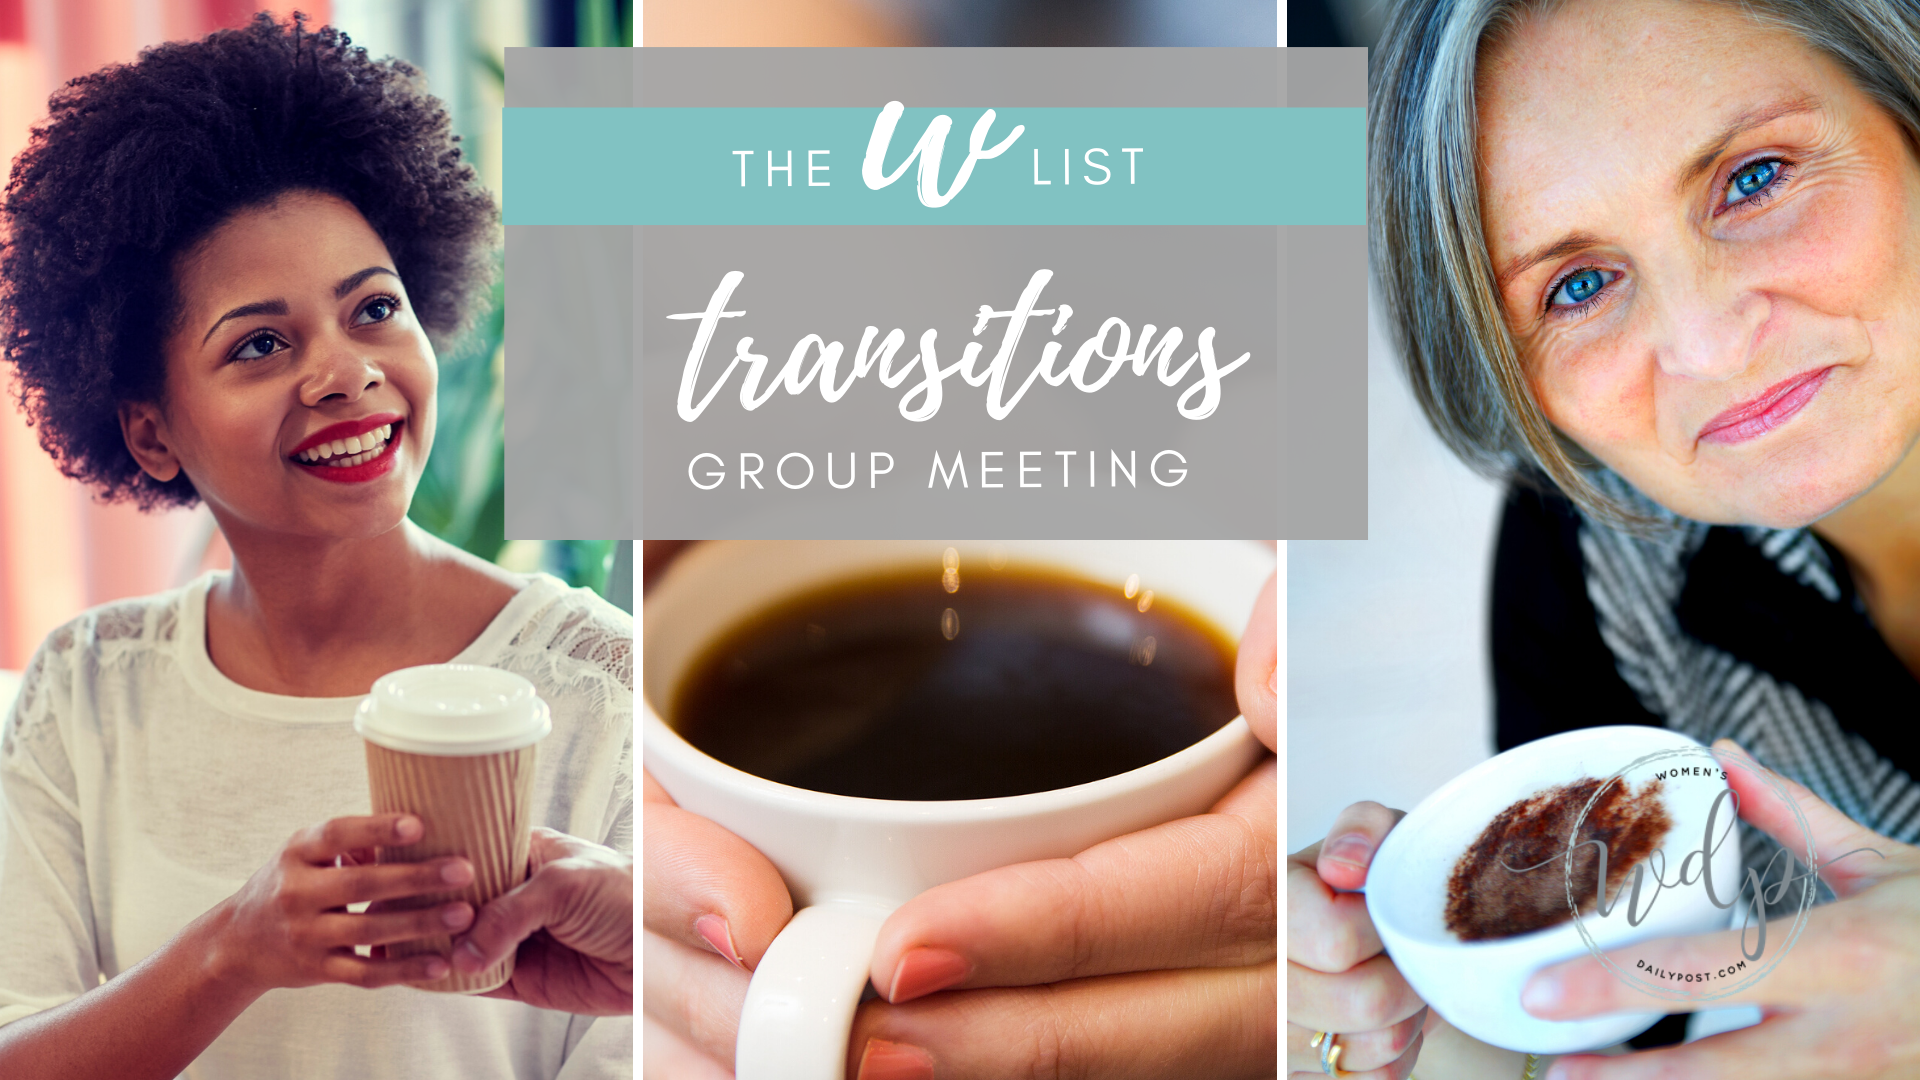 January Transitions Group